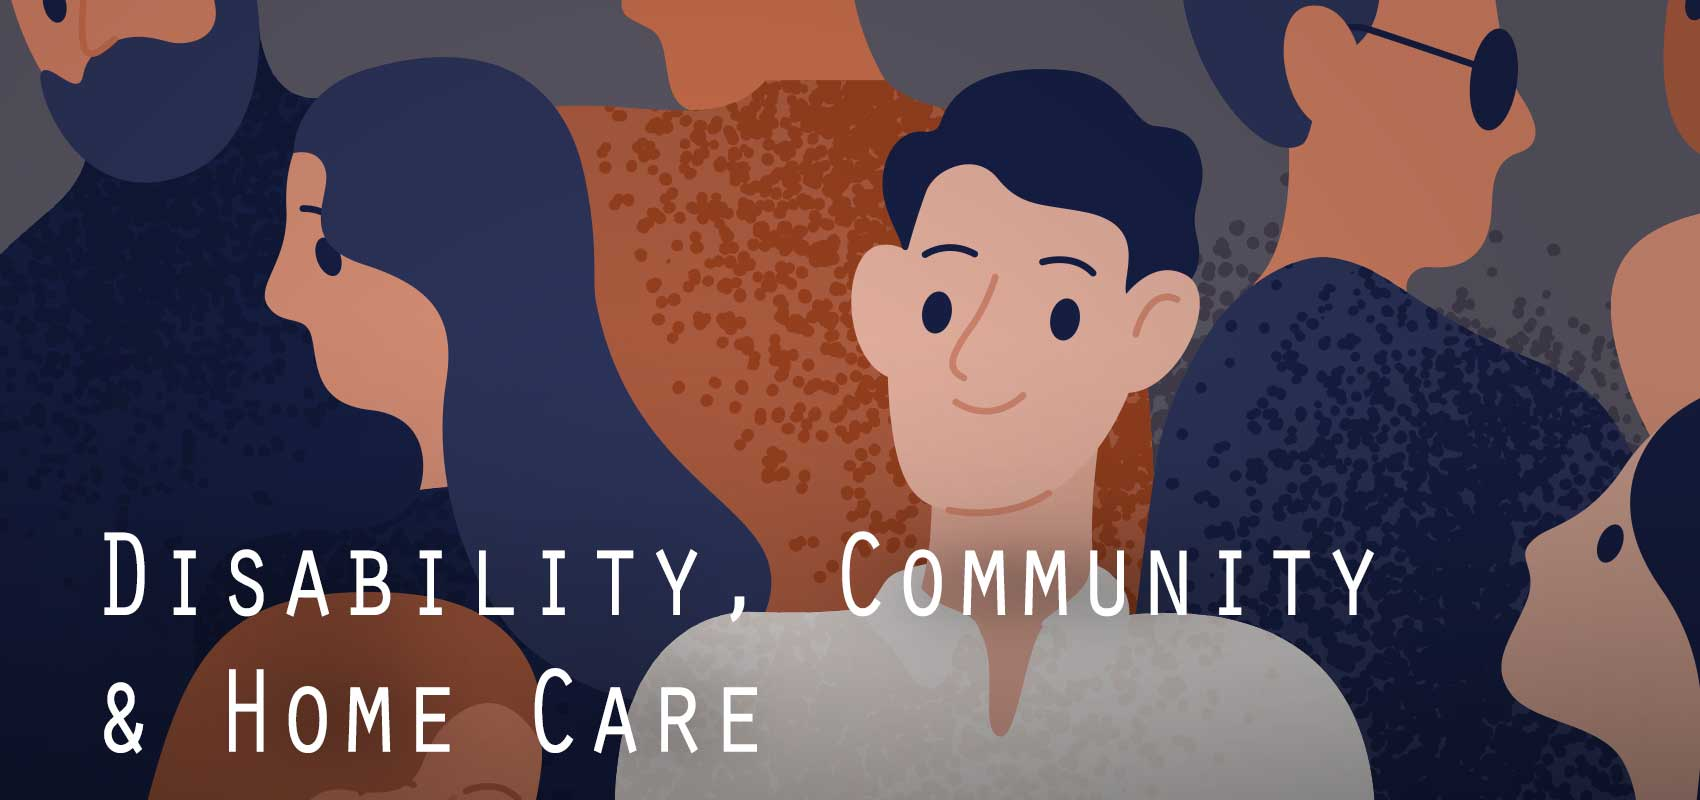 Disability, Community and Home Care